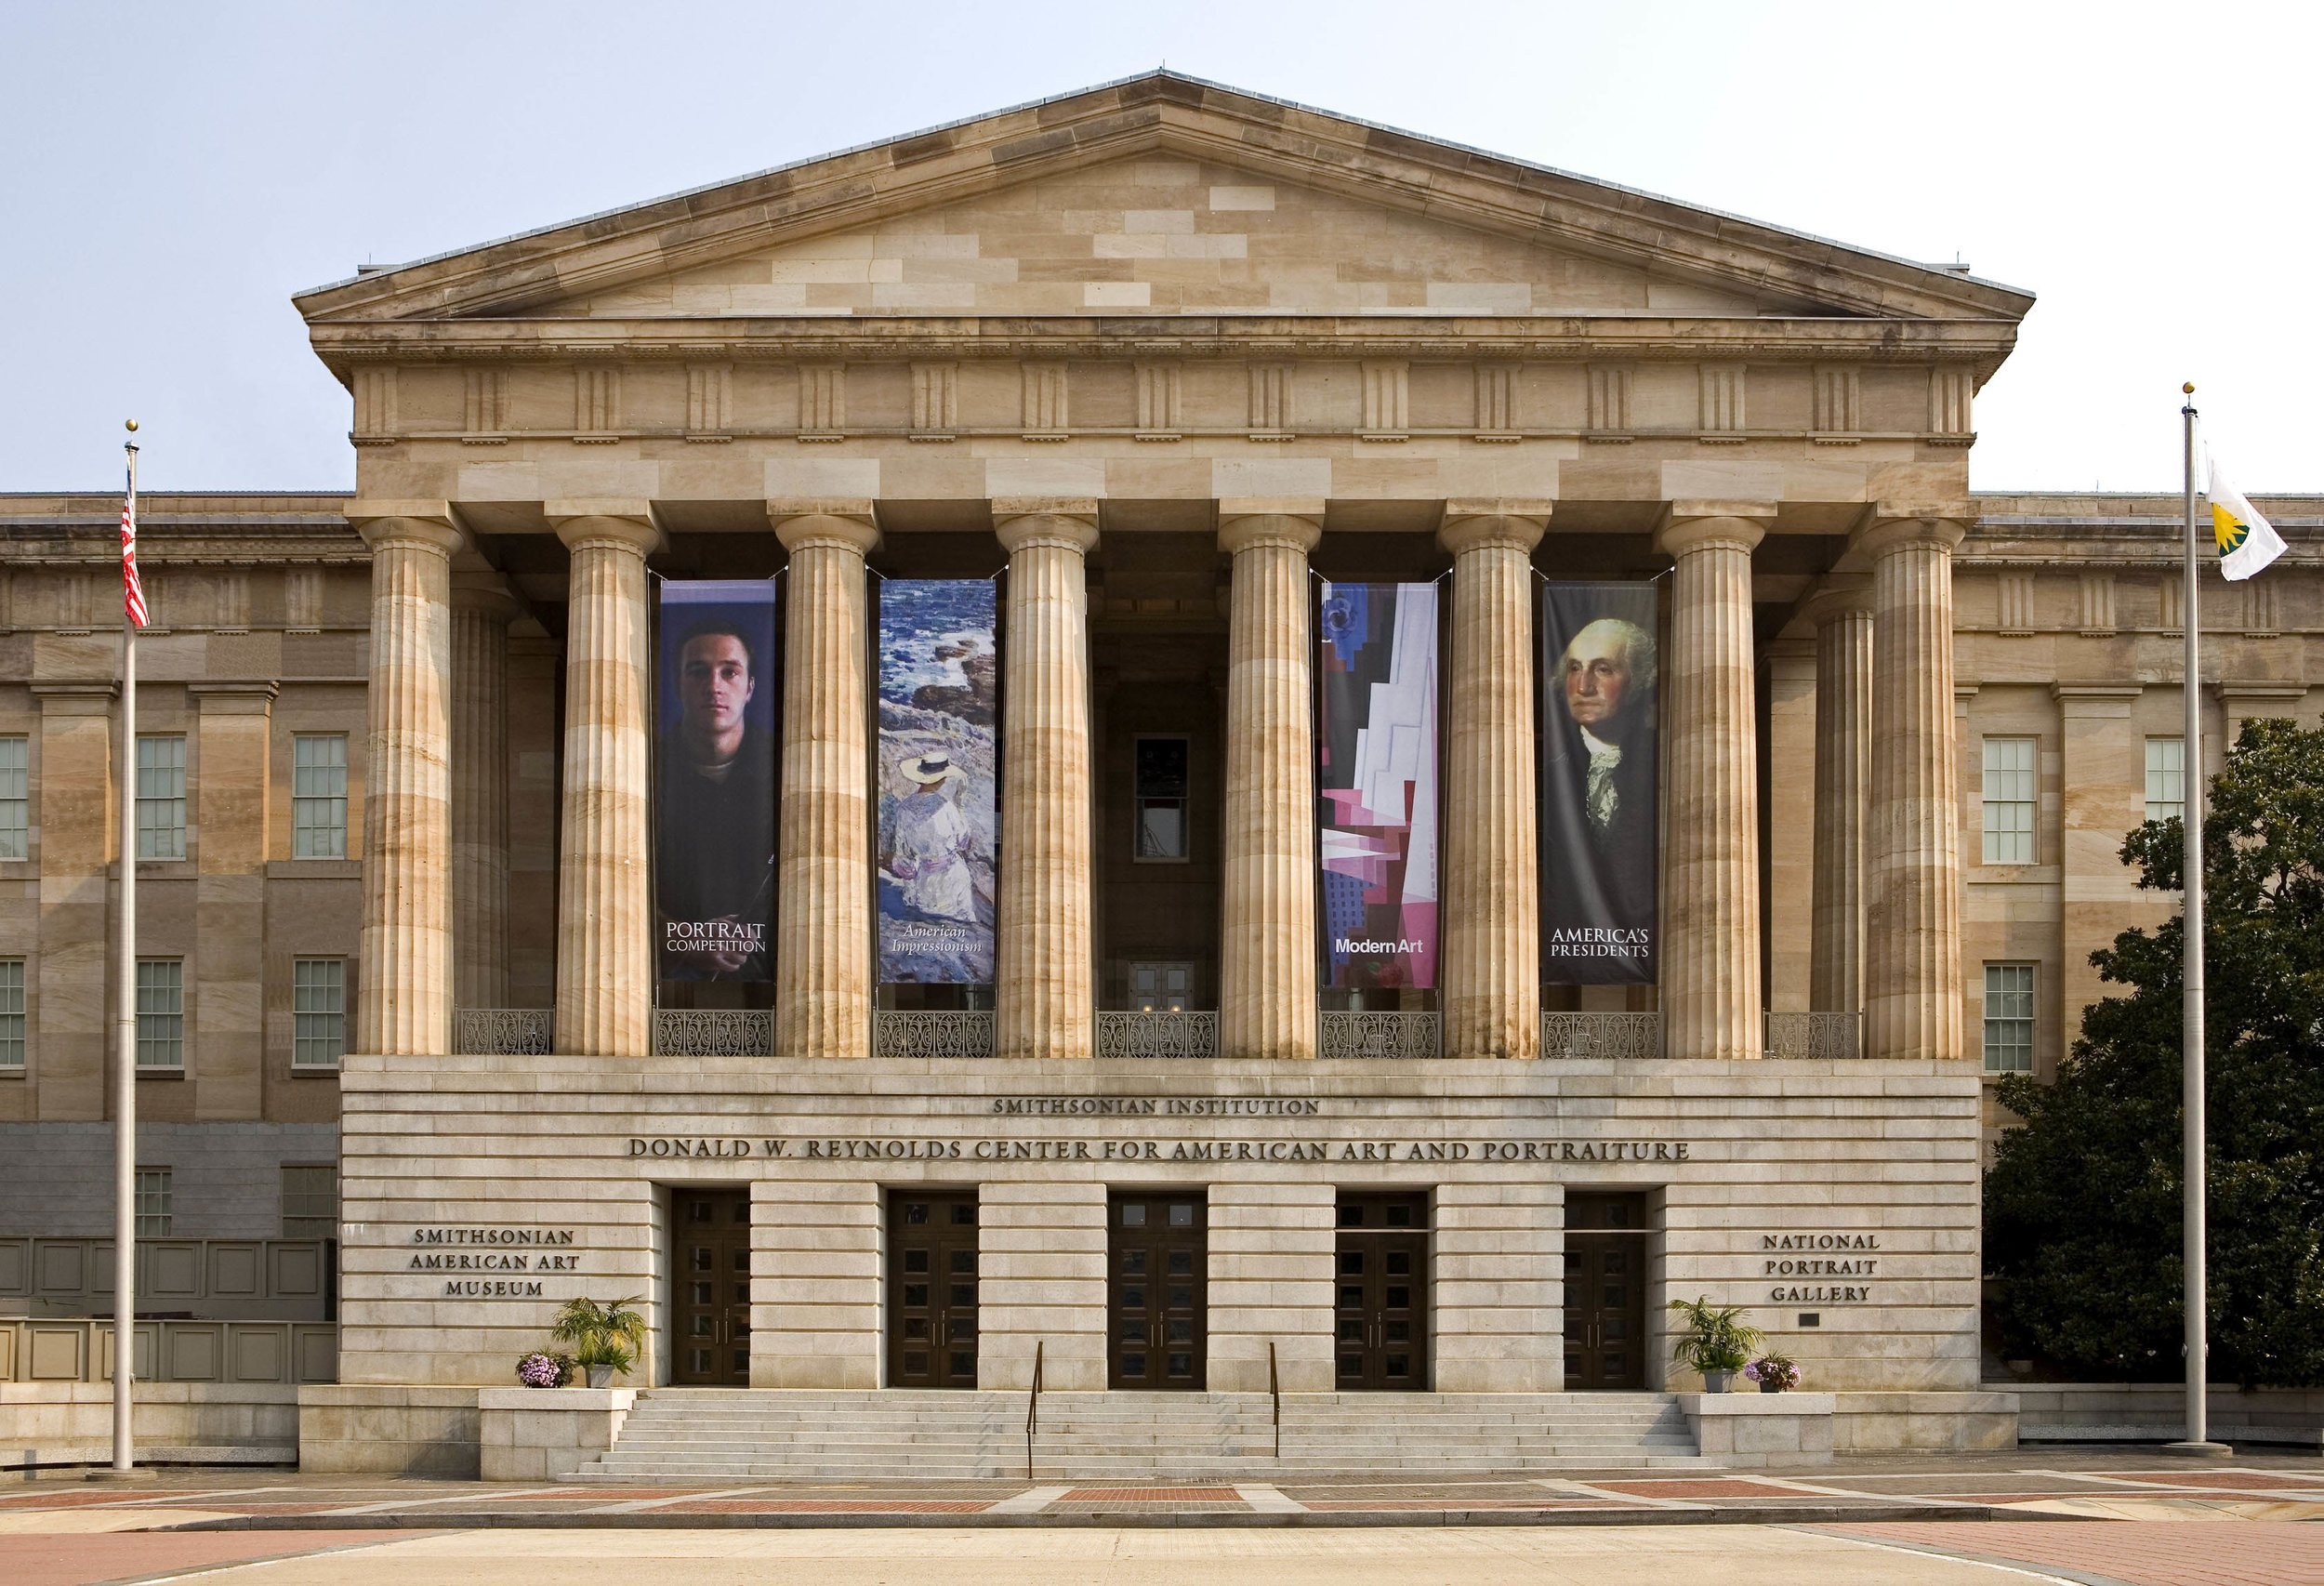 79b_National Portrait Gallery_exterior.jpg